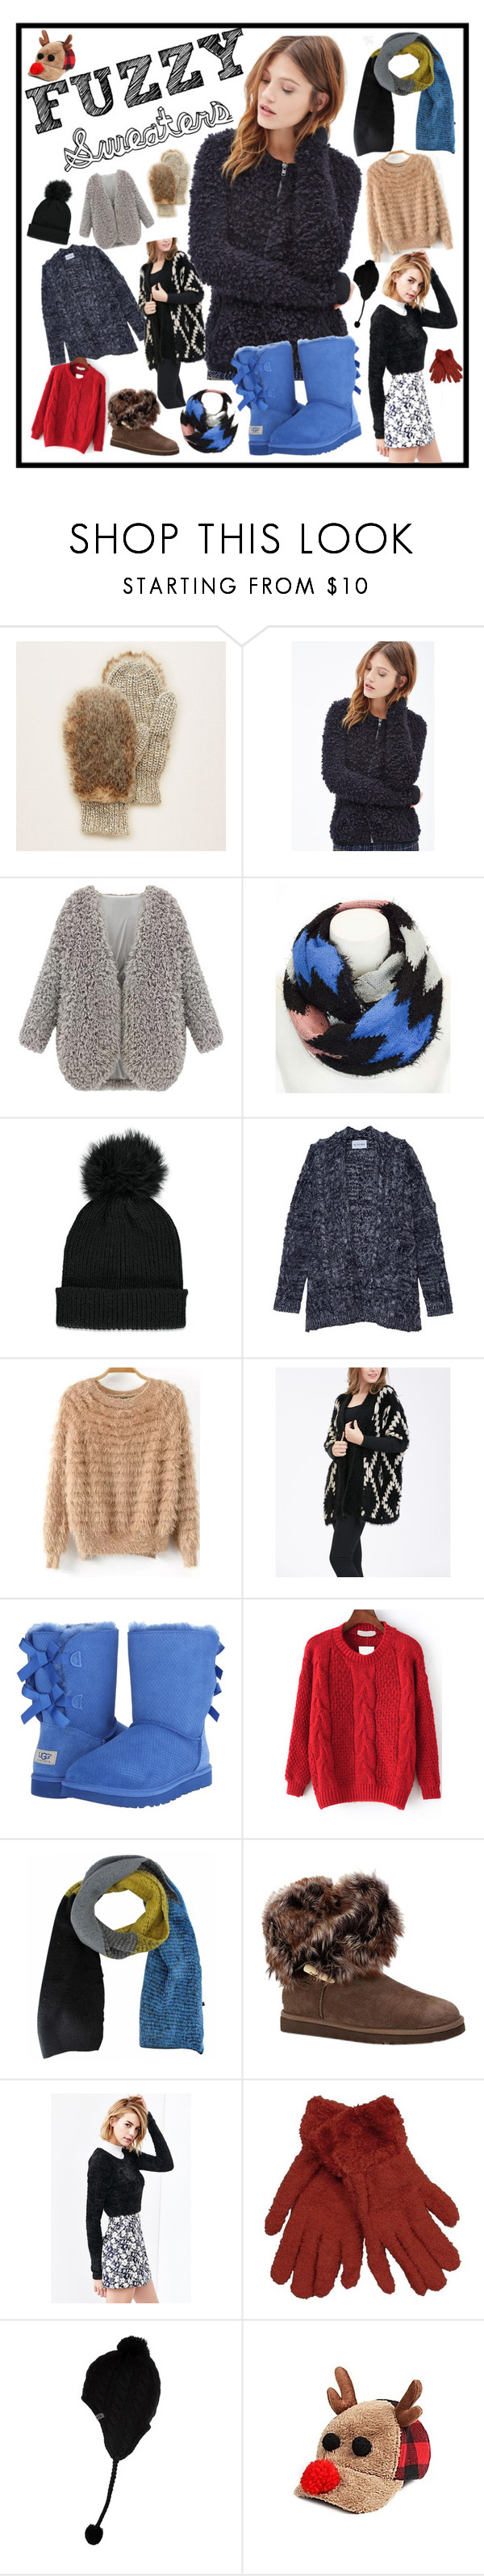 """Fuzzy Sweaters"" by cookierevolt on Polyvore featuring Aerie, Forever 21, Leto, Olive + Oak, Simply Couture, UGG Australia and The North Face"